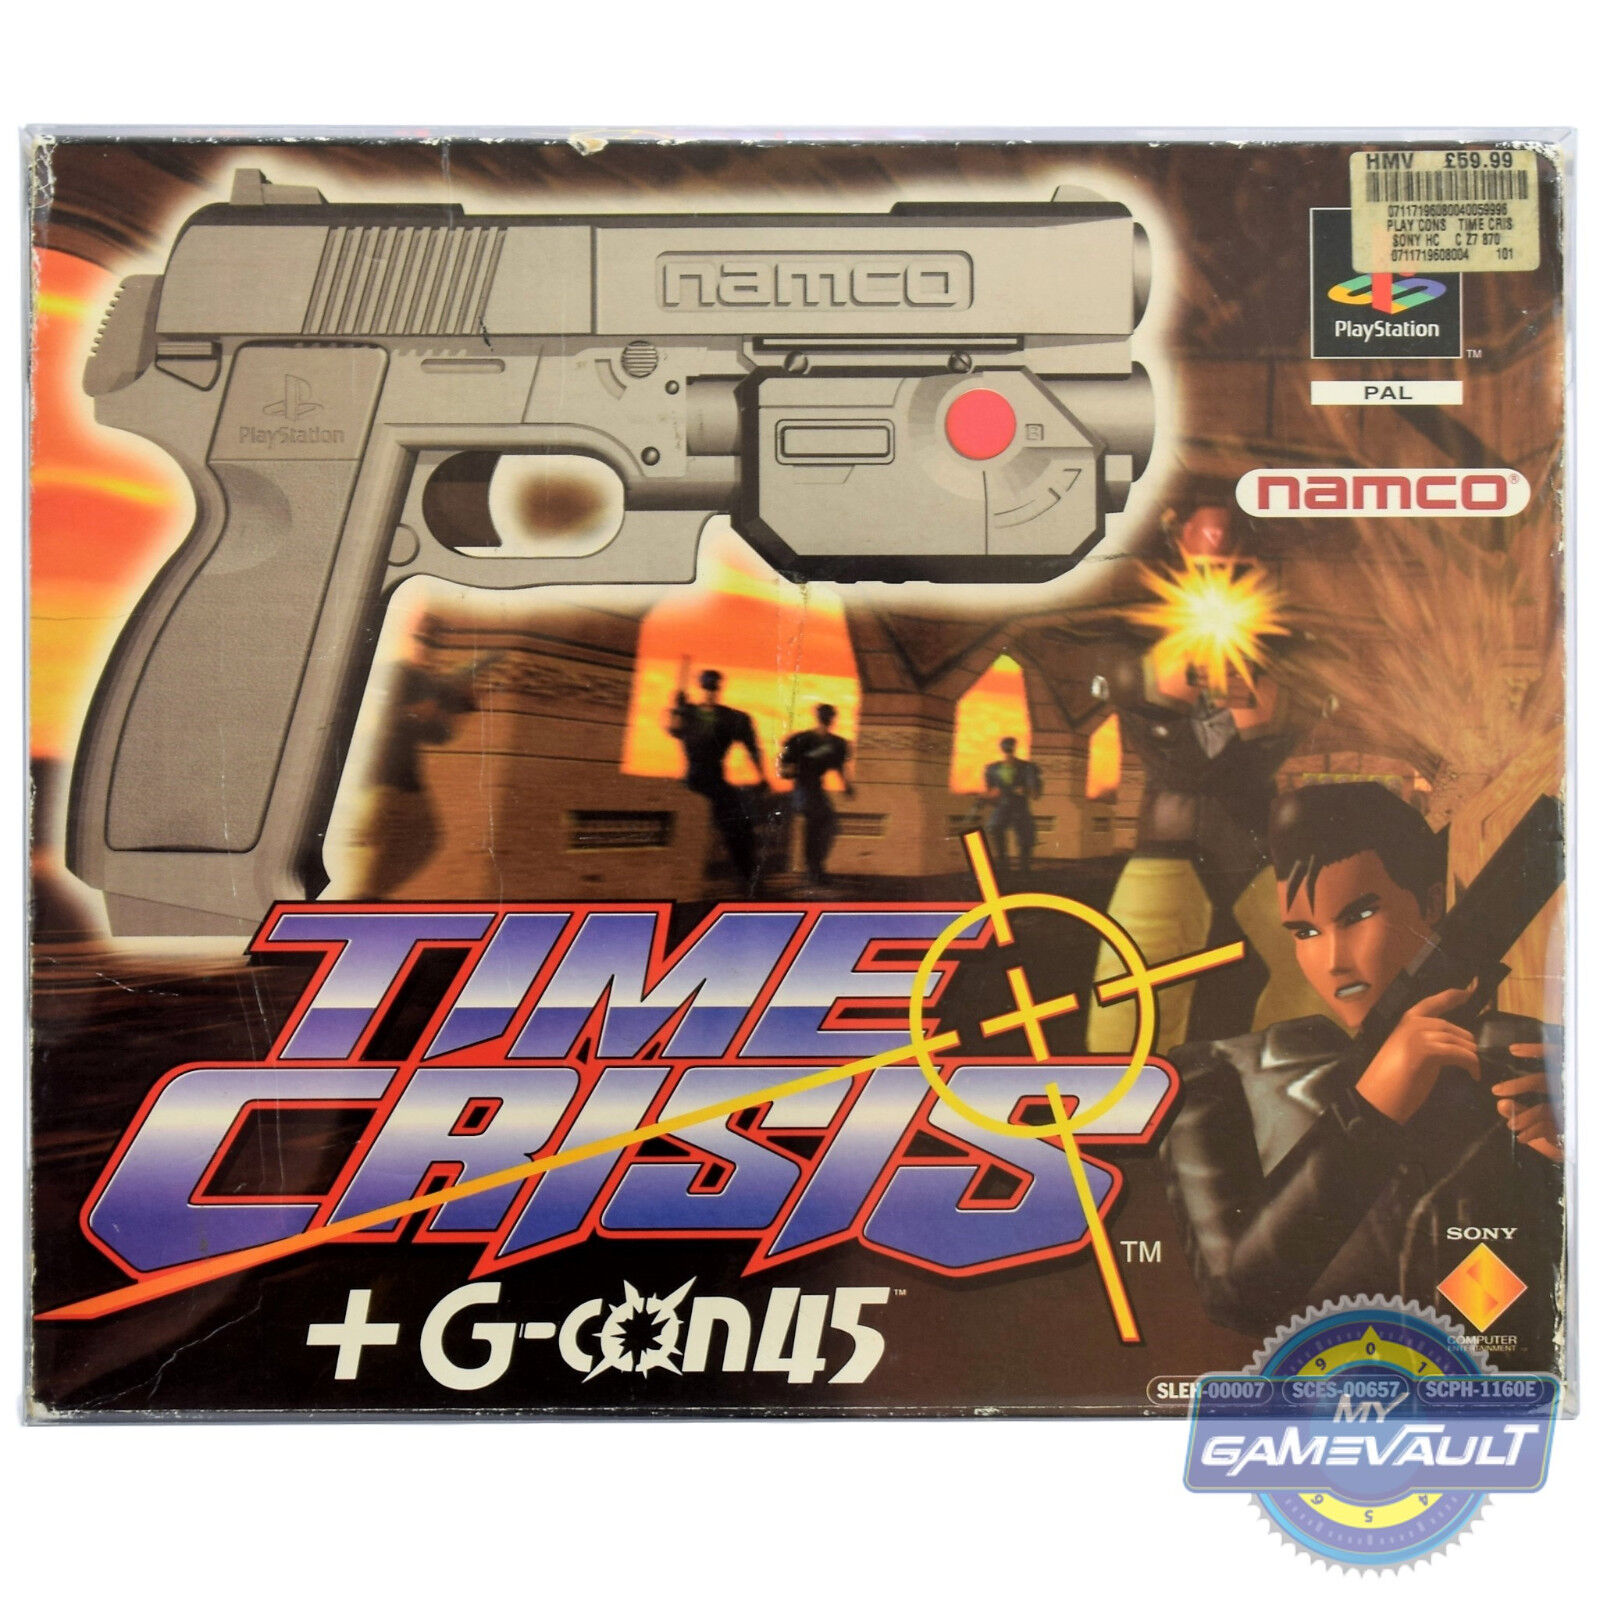 1 x PS1 Game BOX PROTECTOR for Time Crisis Gun & Game 0.5mm PLASTIC DISPLAY CASE